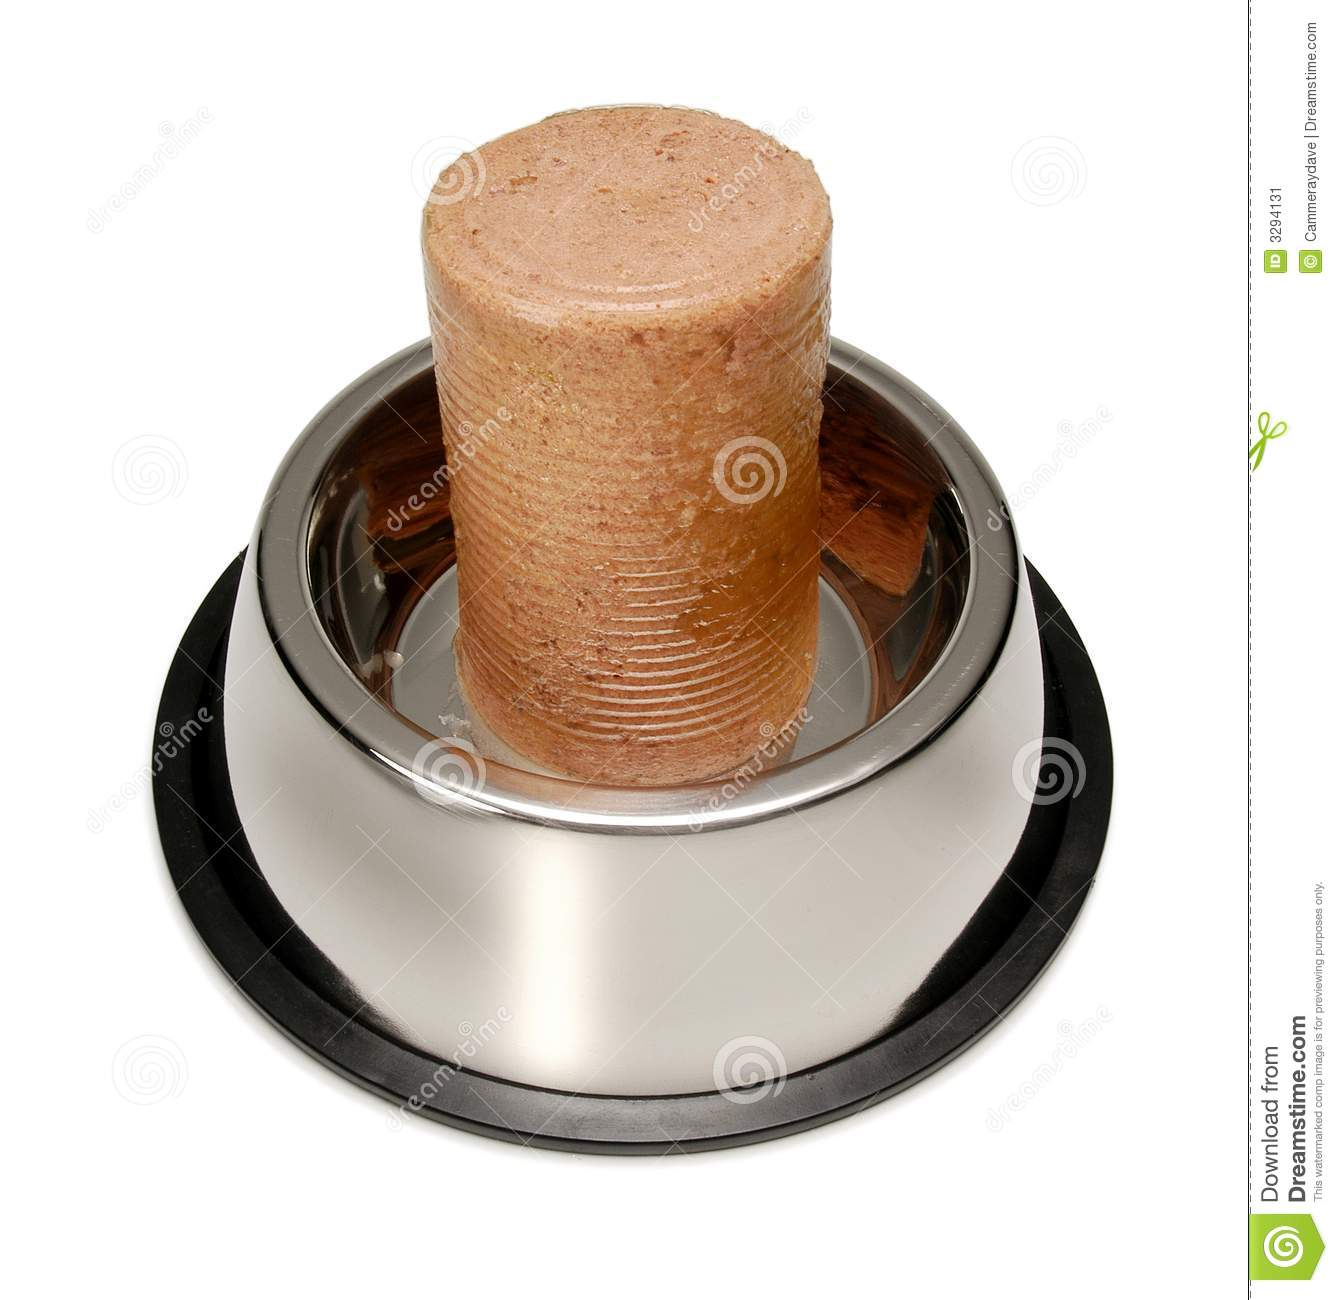 Canned Dog Food Bowl Stock Image - Image: 3294131 Relaxing Dog Music